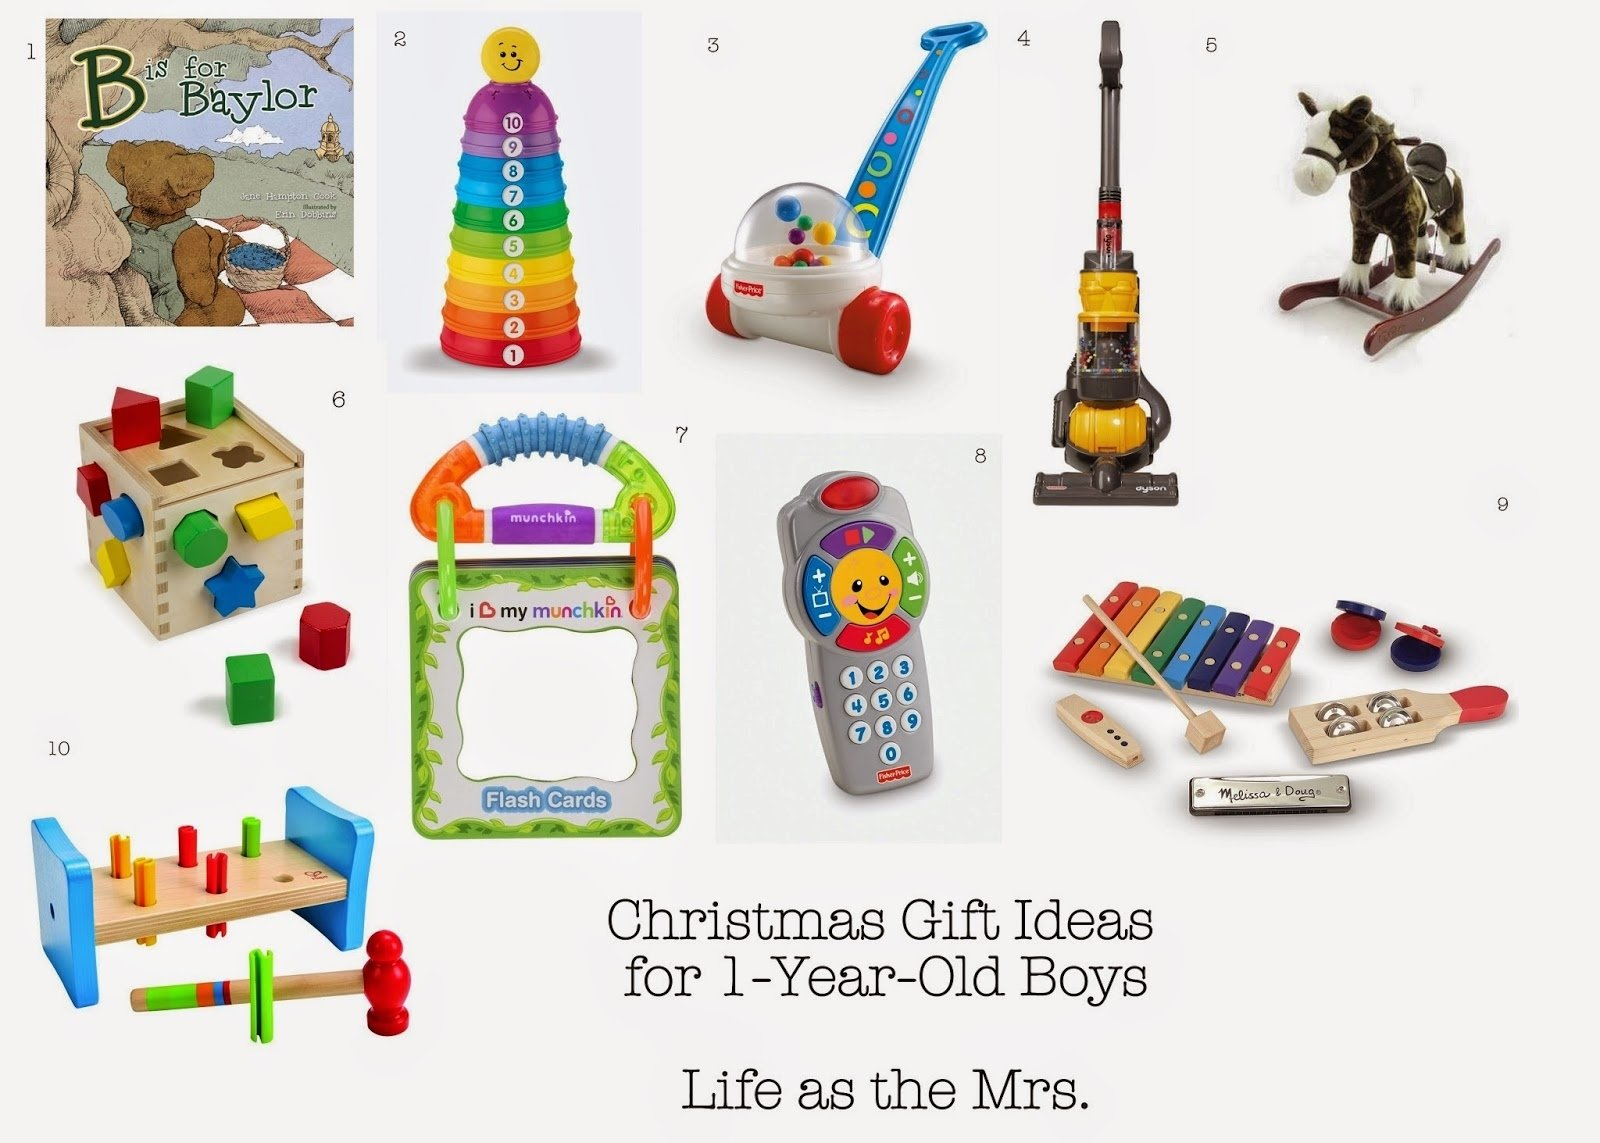 10 perfect 4 year old boy christmas gift ideas life as the mrs christmas gift ideas